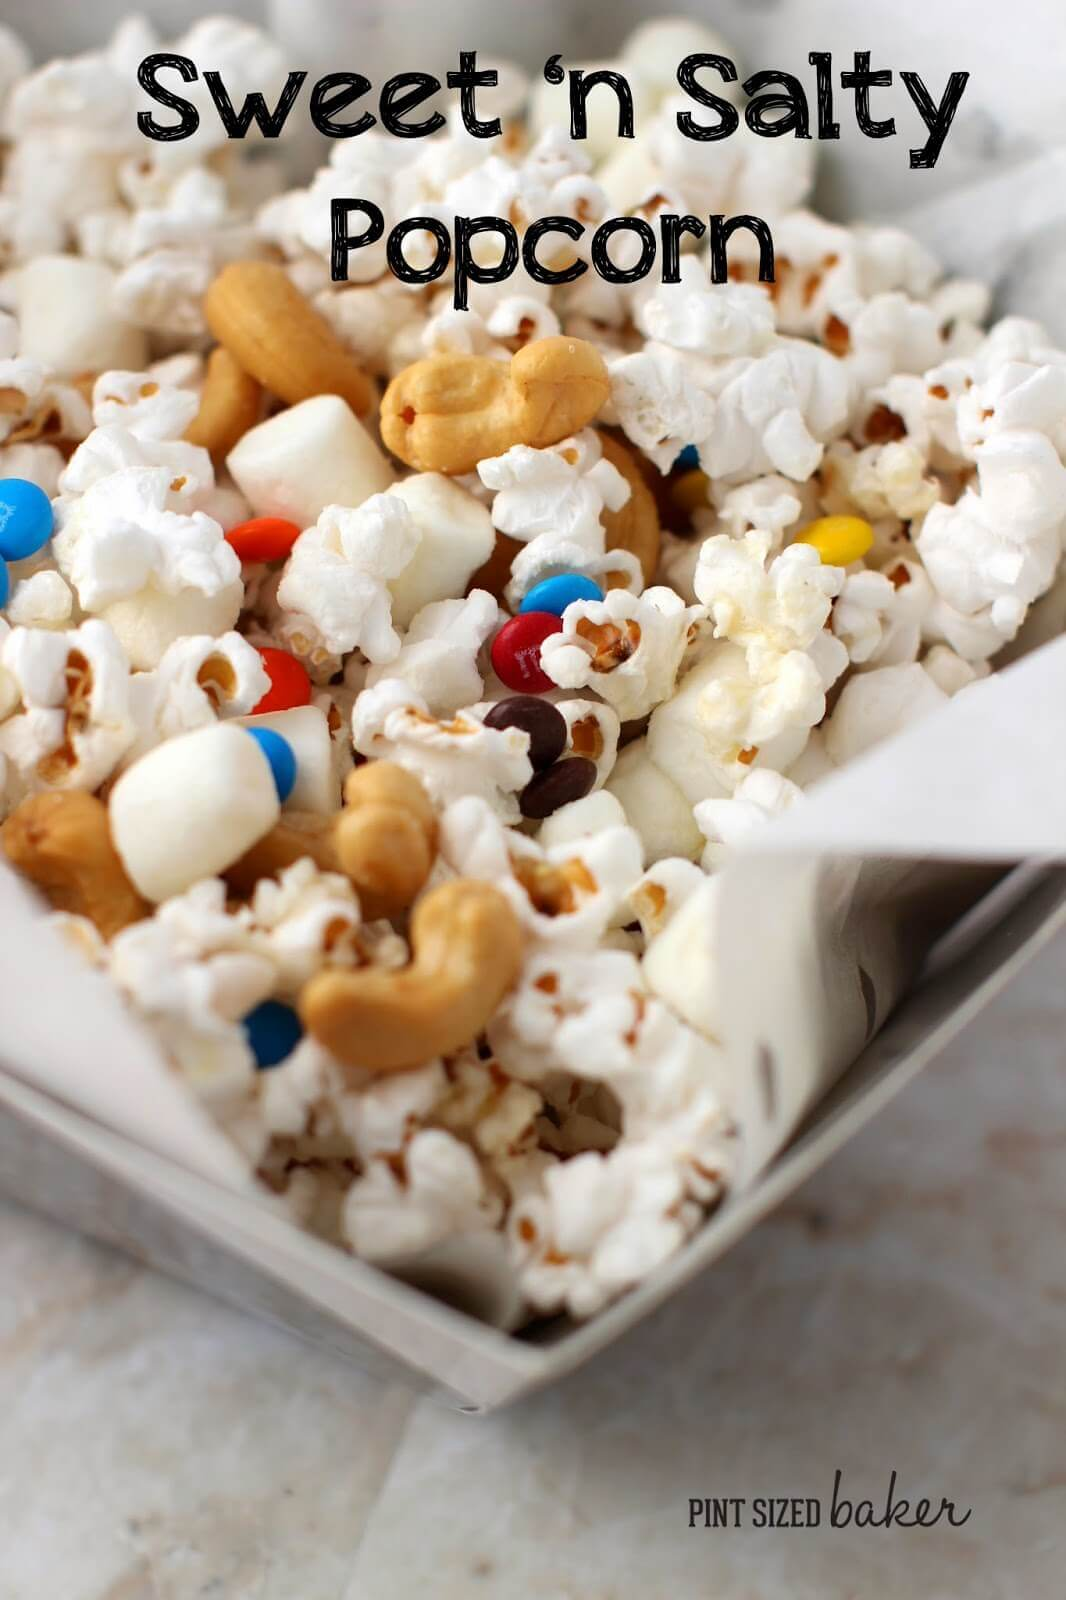 Enjoy some Sweet and Salty popcorn with mini M&M's, mini marshmallows and some salty cashews.